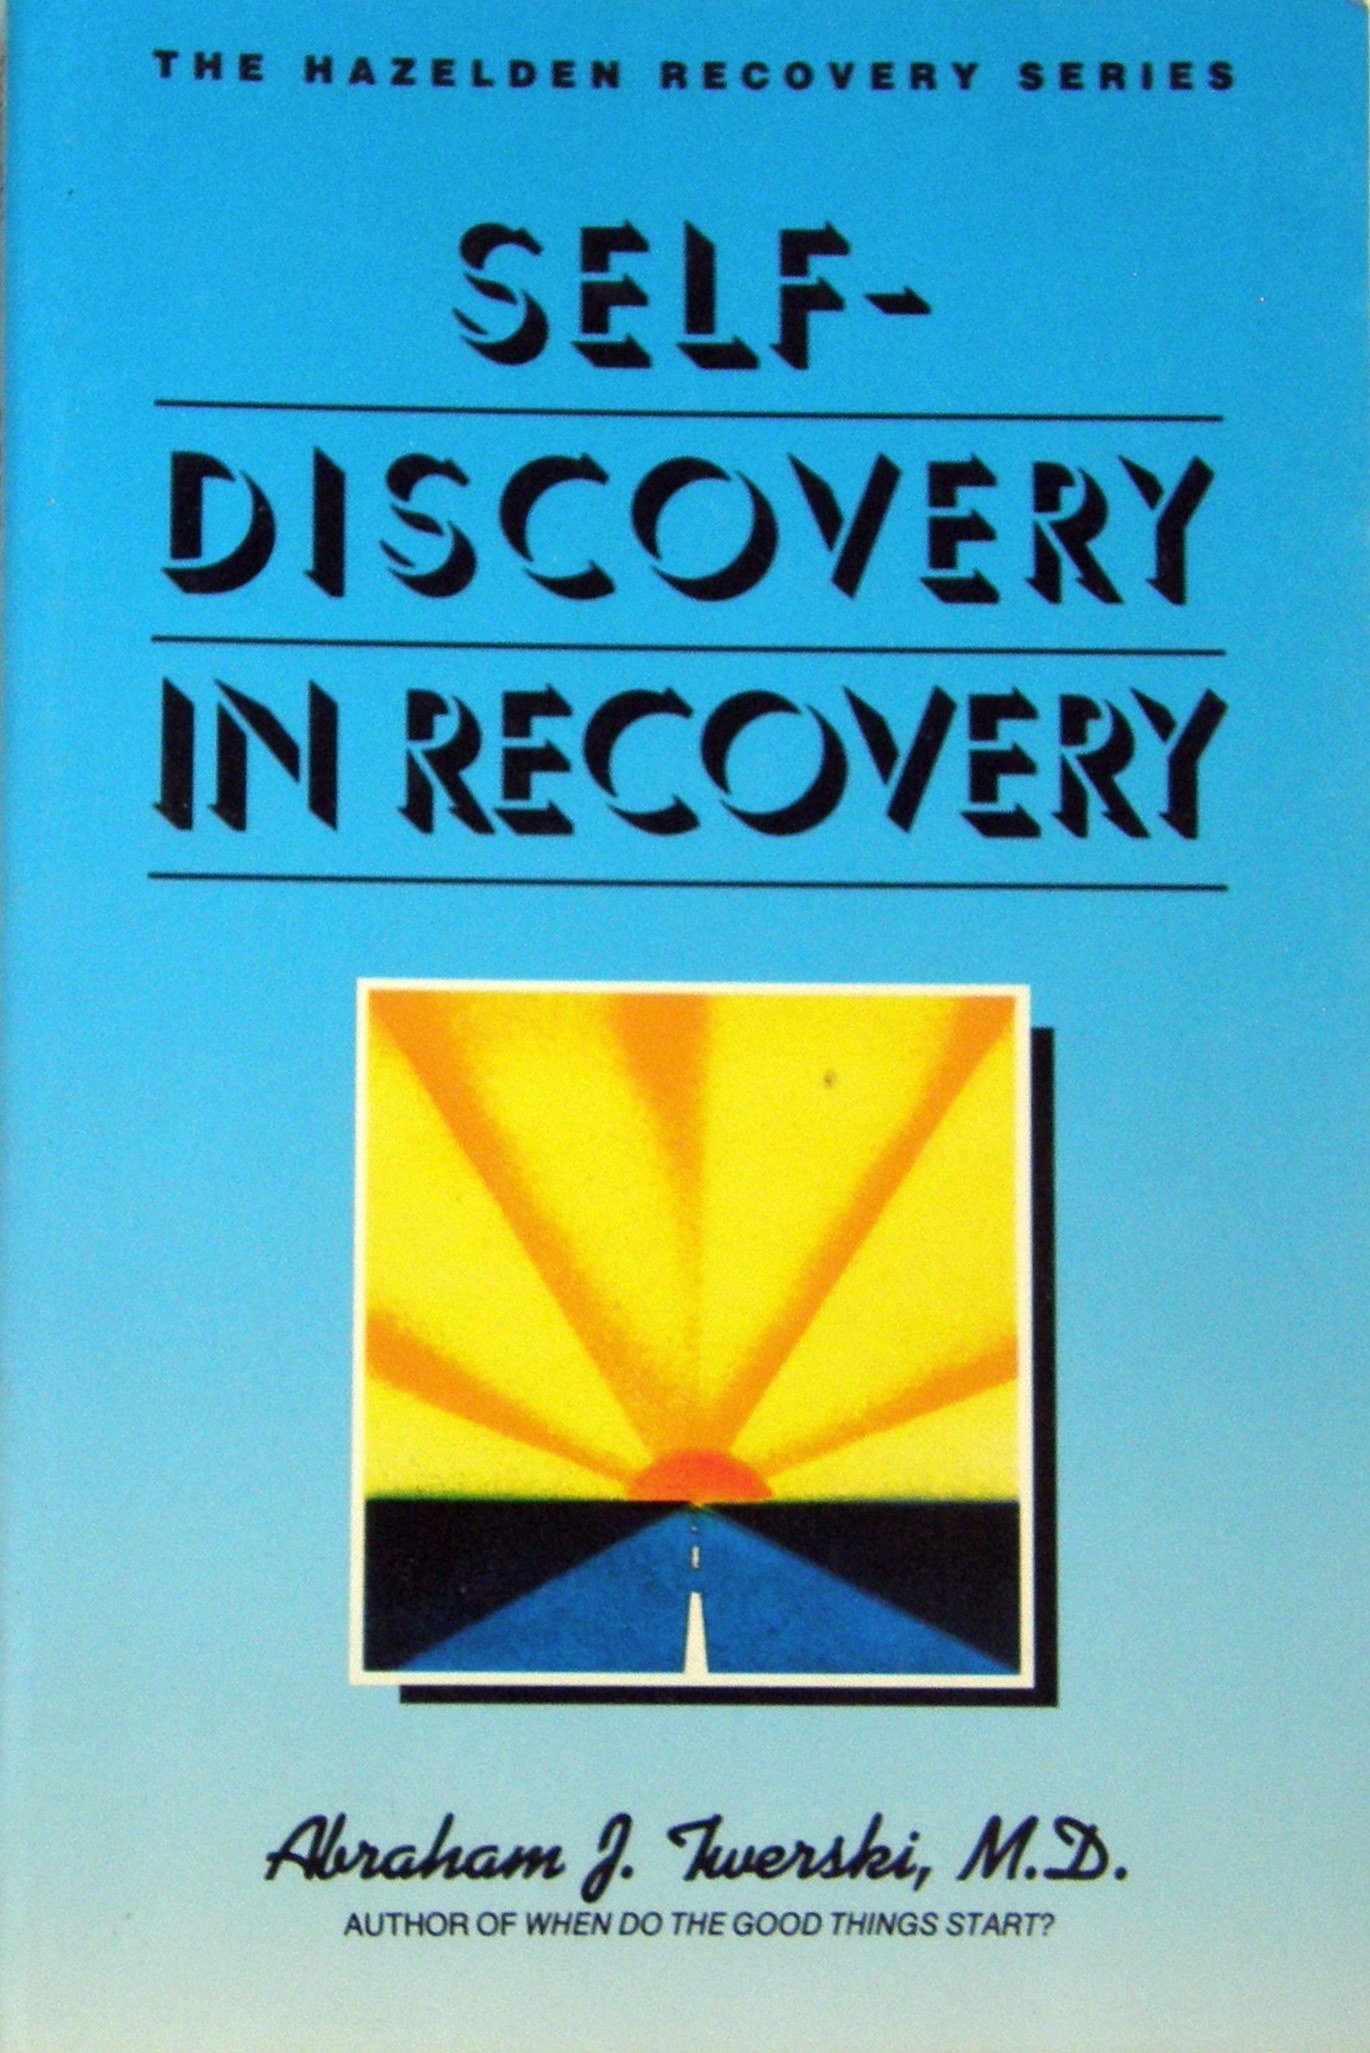 Self discovery in recovery hazelden recovery series abraham j twerski 9780062554918 amazon com books